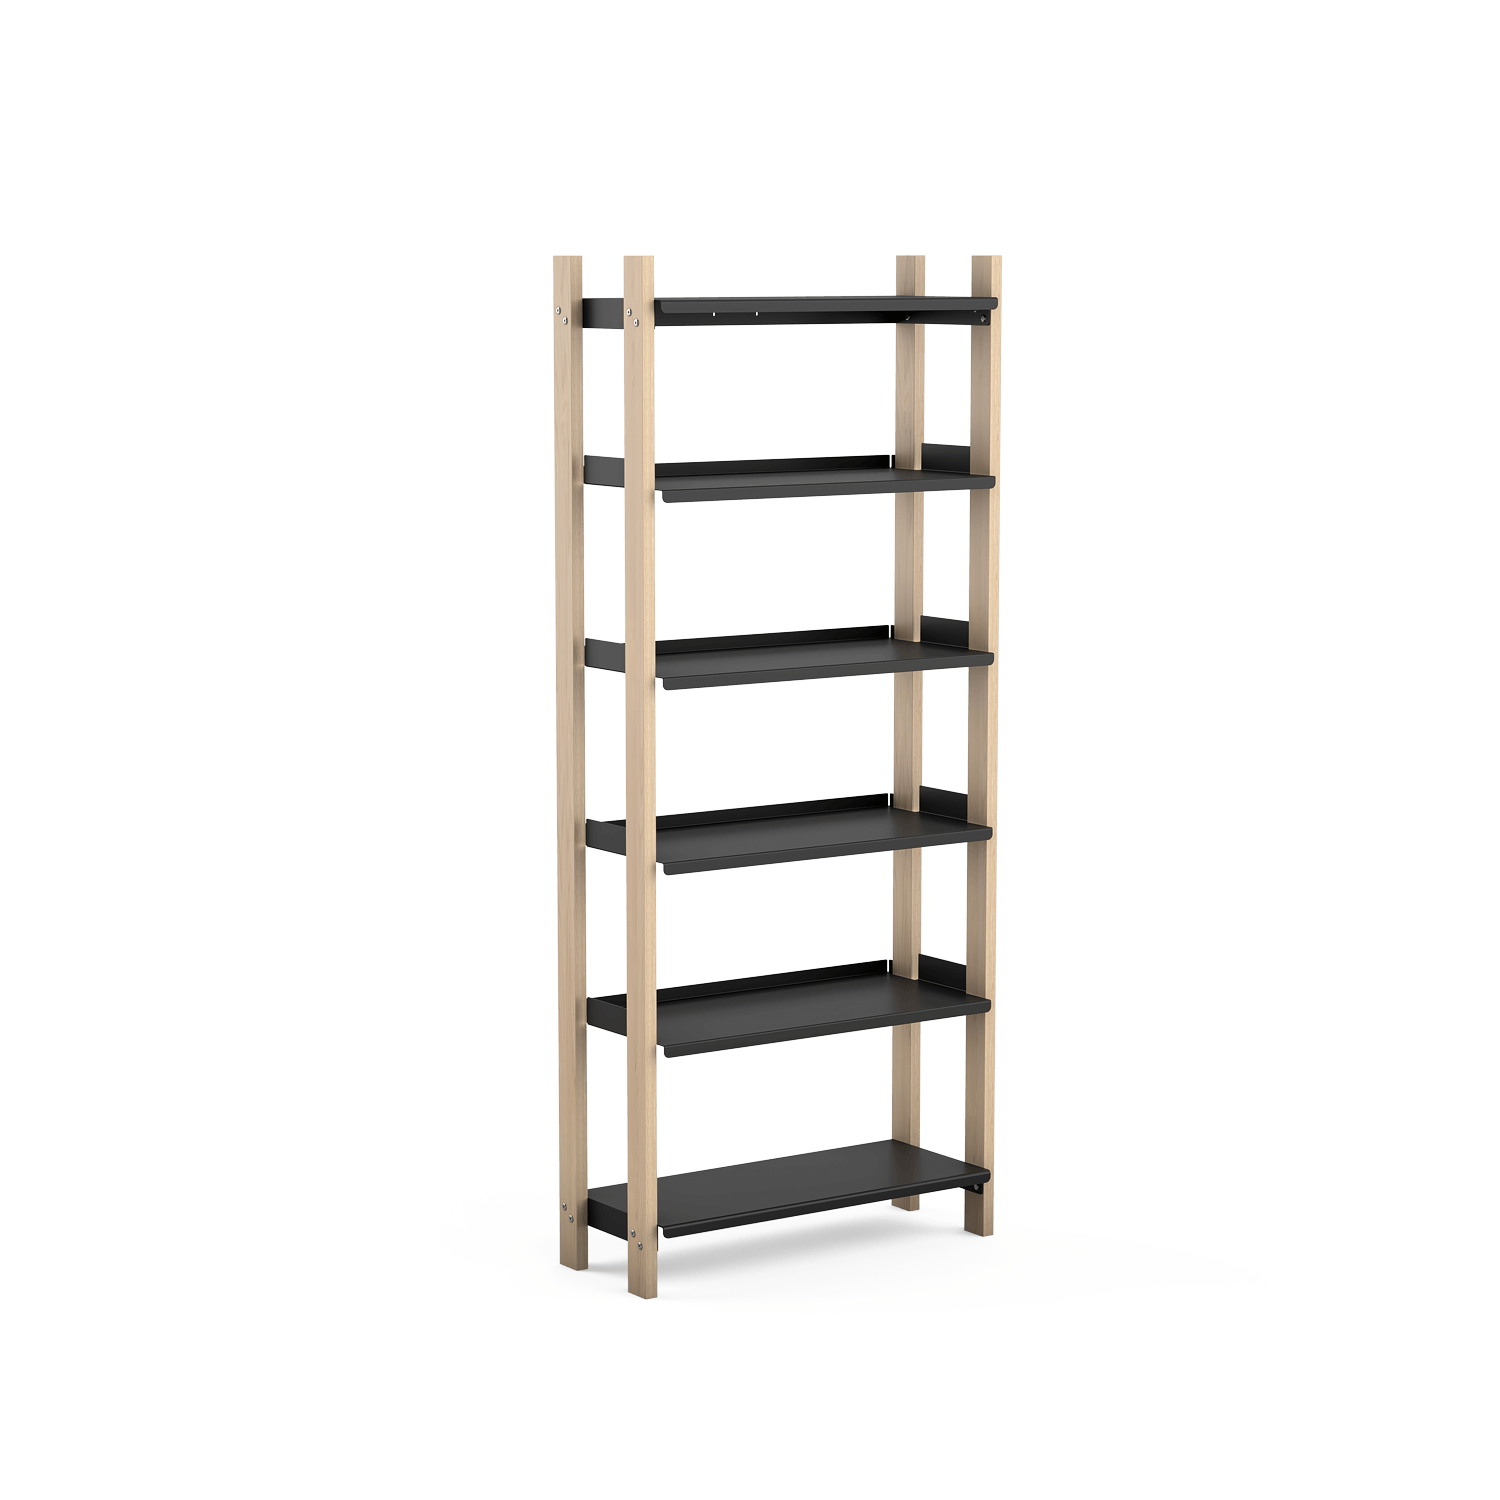 Rendering of a tall shelf